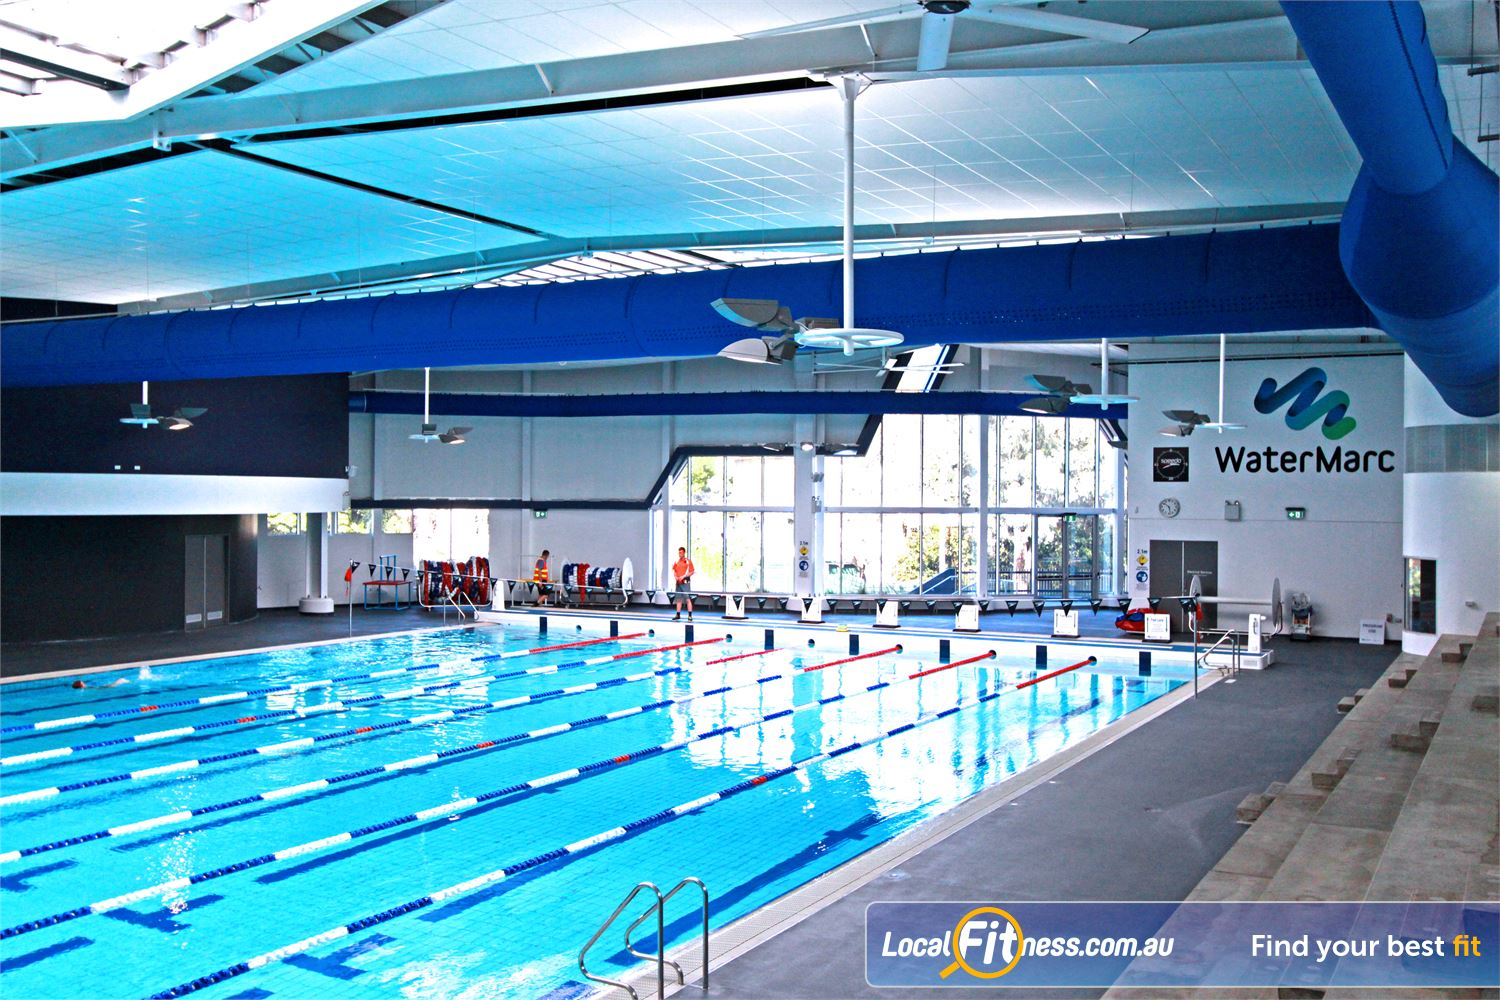 WaterMarc Aquatic & Leisure Centre Near Montmorency A hit with the community and community swimmers.